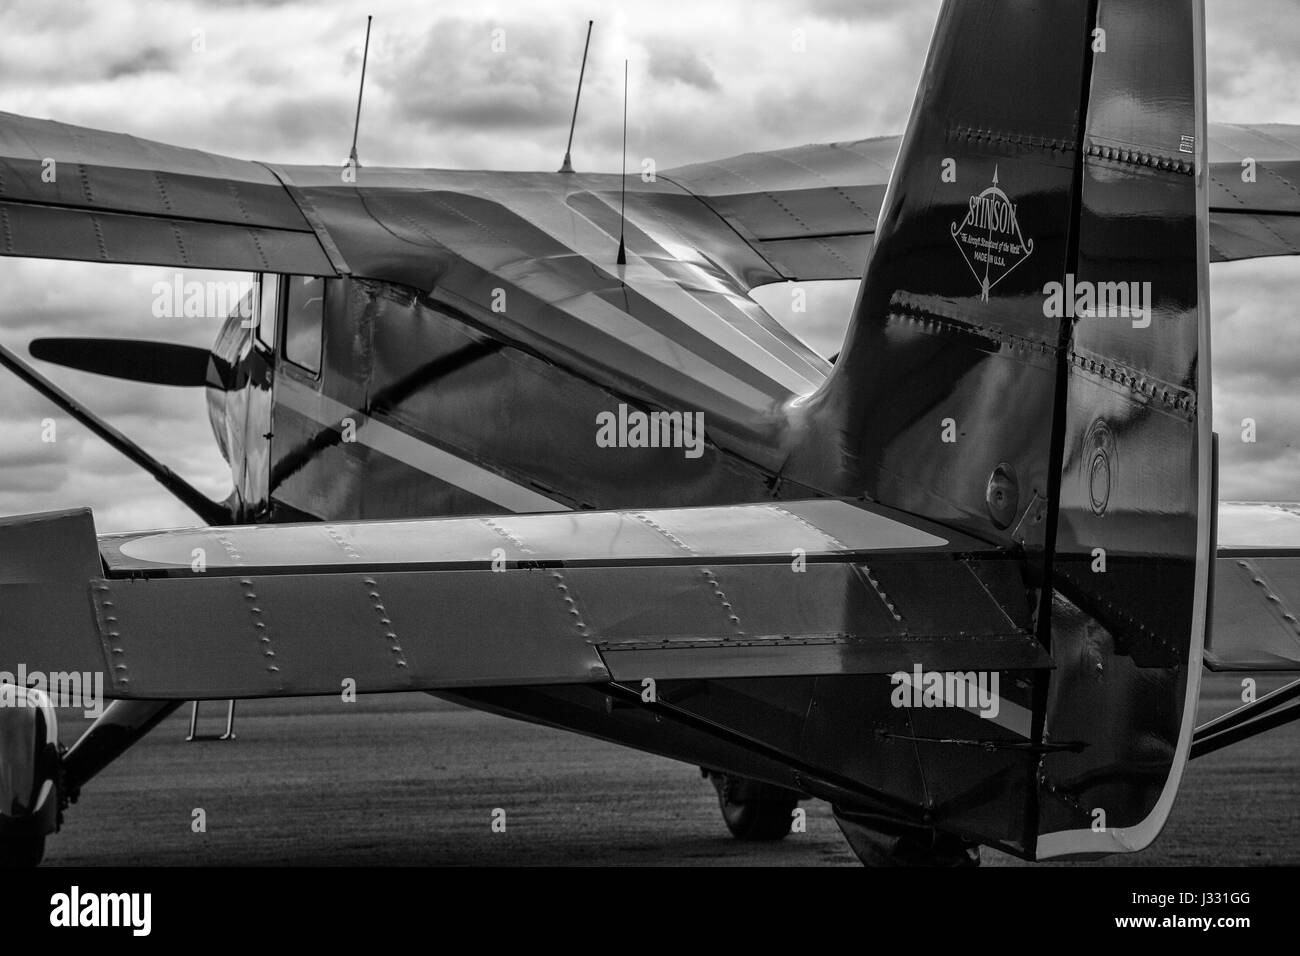 Stinson V-77 Reliant vintage aeroplane NC33543. Built in 1944. - Stock Image